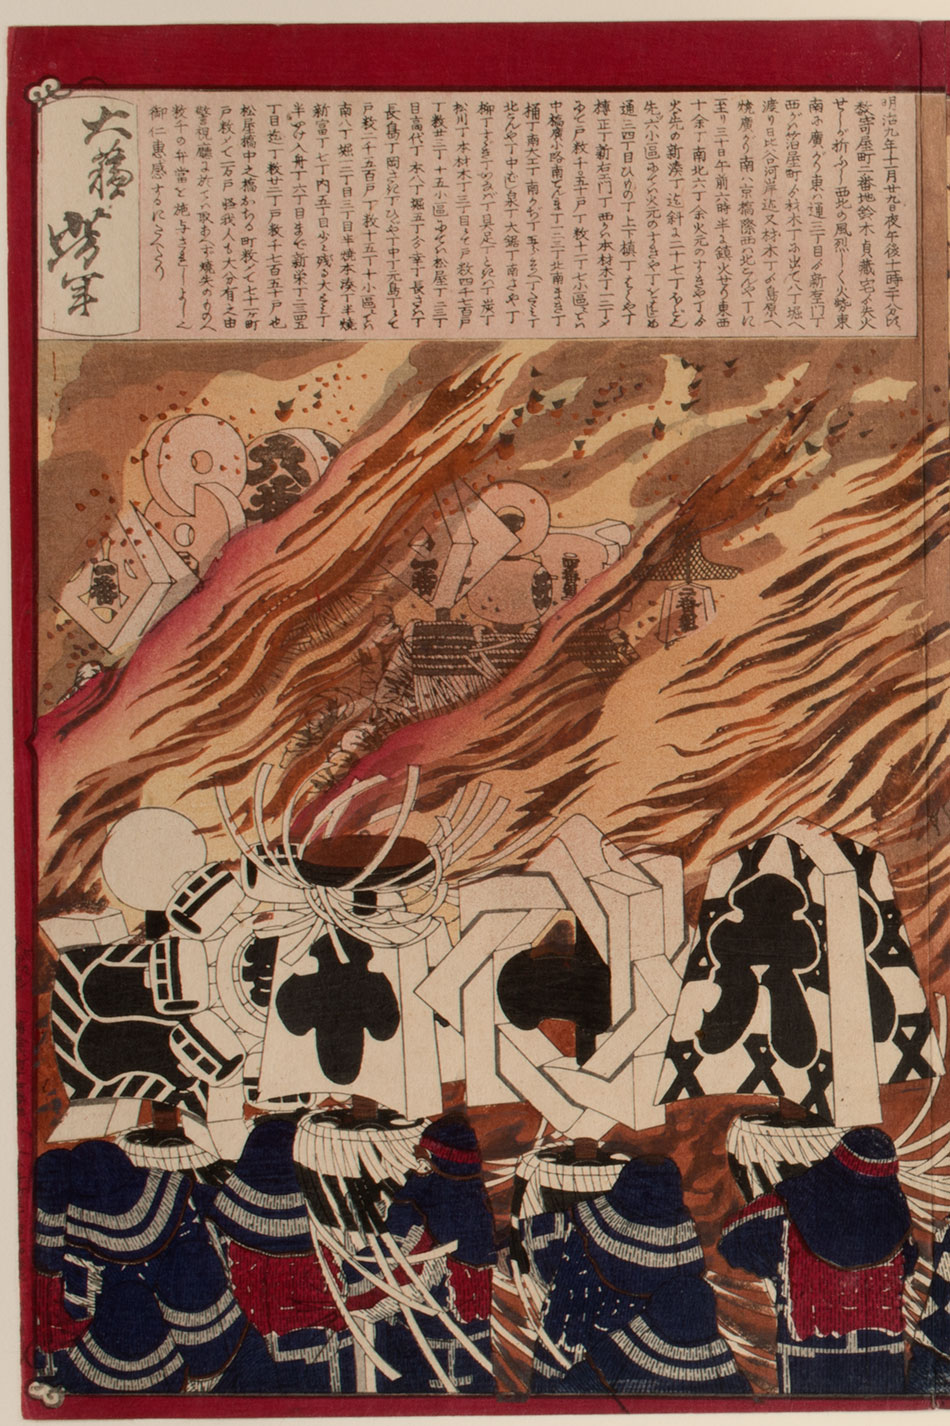 DETAIL_The-Great-Fire-that-Began-in-Sukiyacho-on-29-November-1876-and-Burned-All-Night-Causing-Tremendous-Damage,-No_